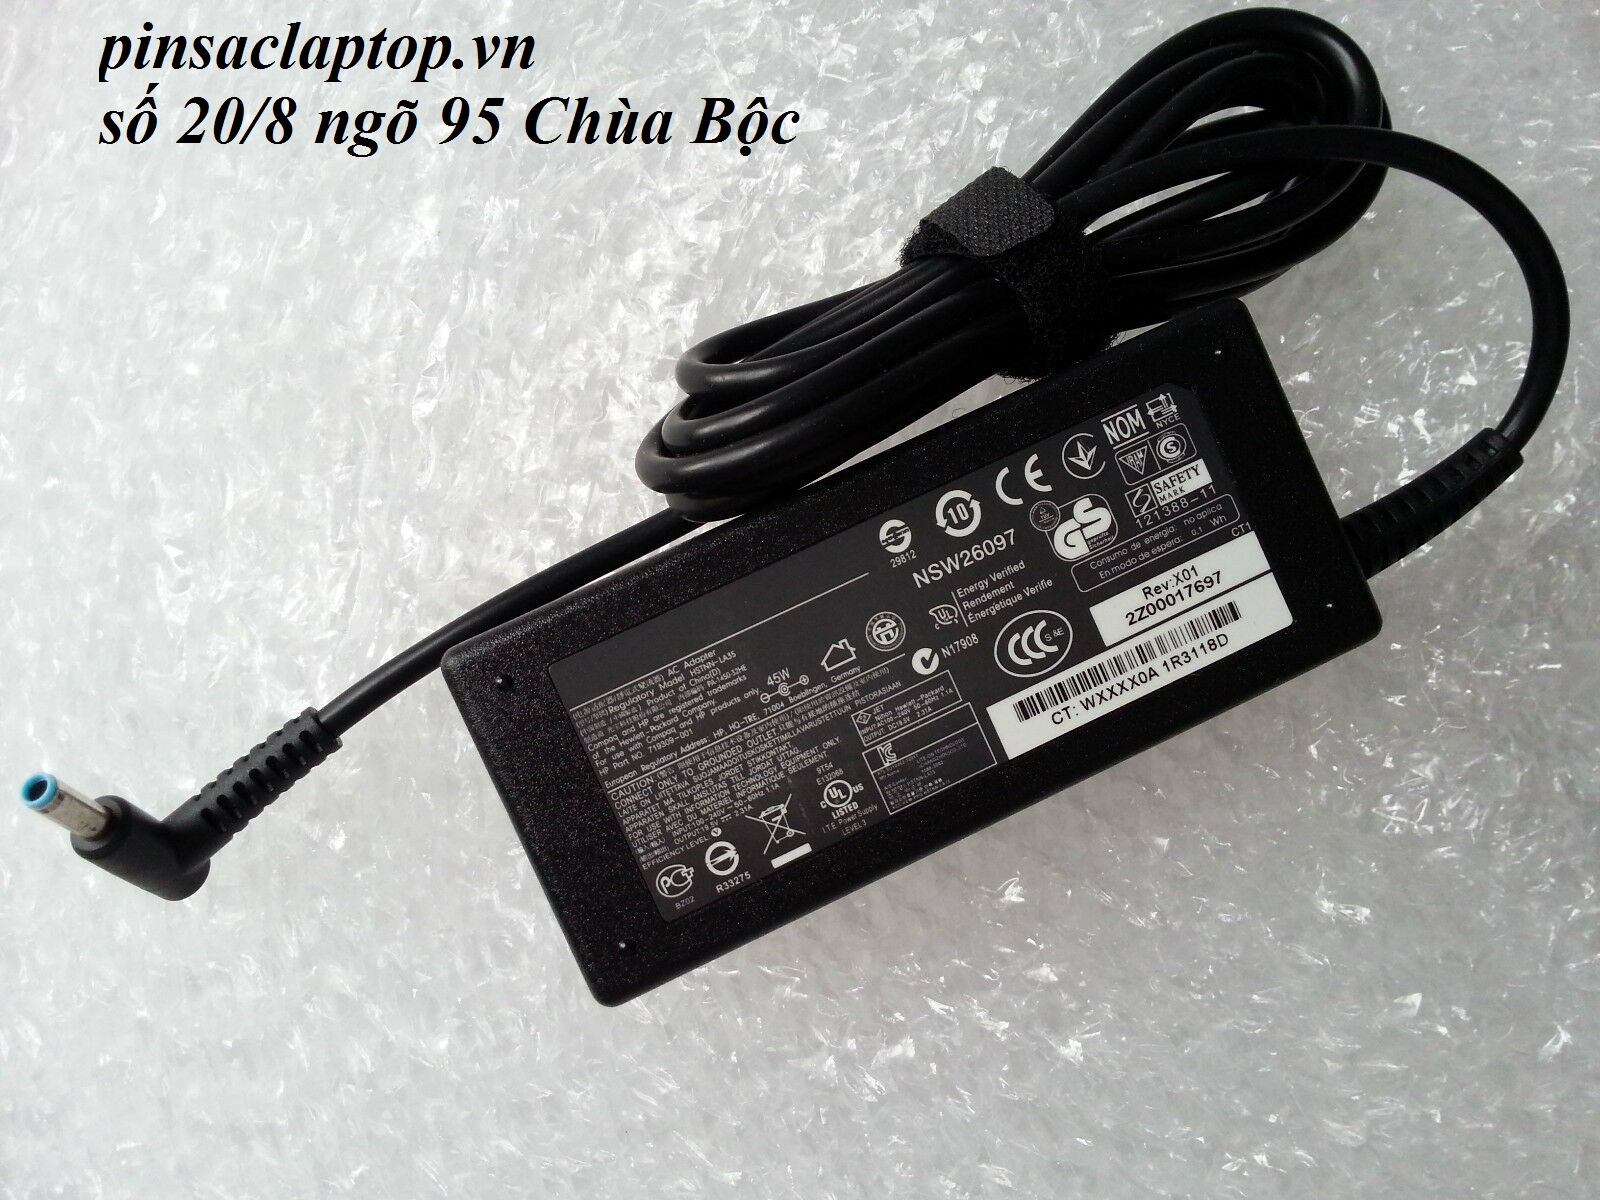 Sạc Adapter Laptop HP Envy HP ENVY 13-ah series 13-ah0002ca 13-ah0003ca 13-ah0004ca